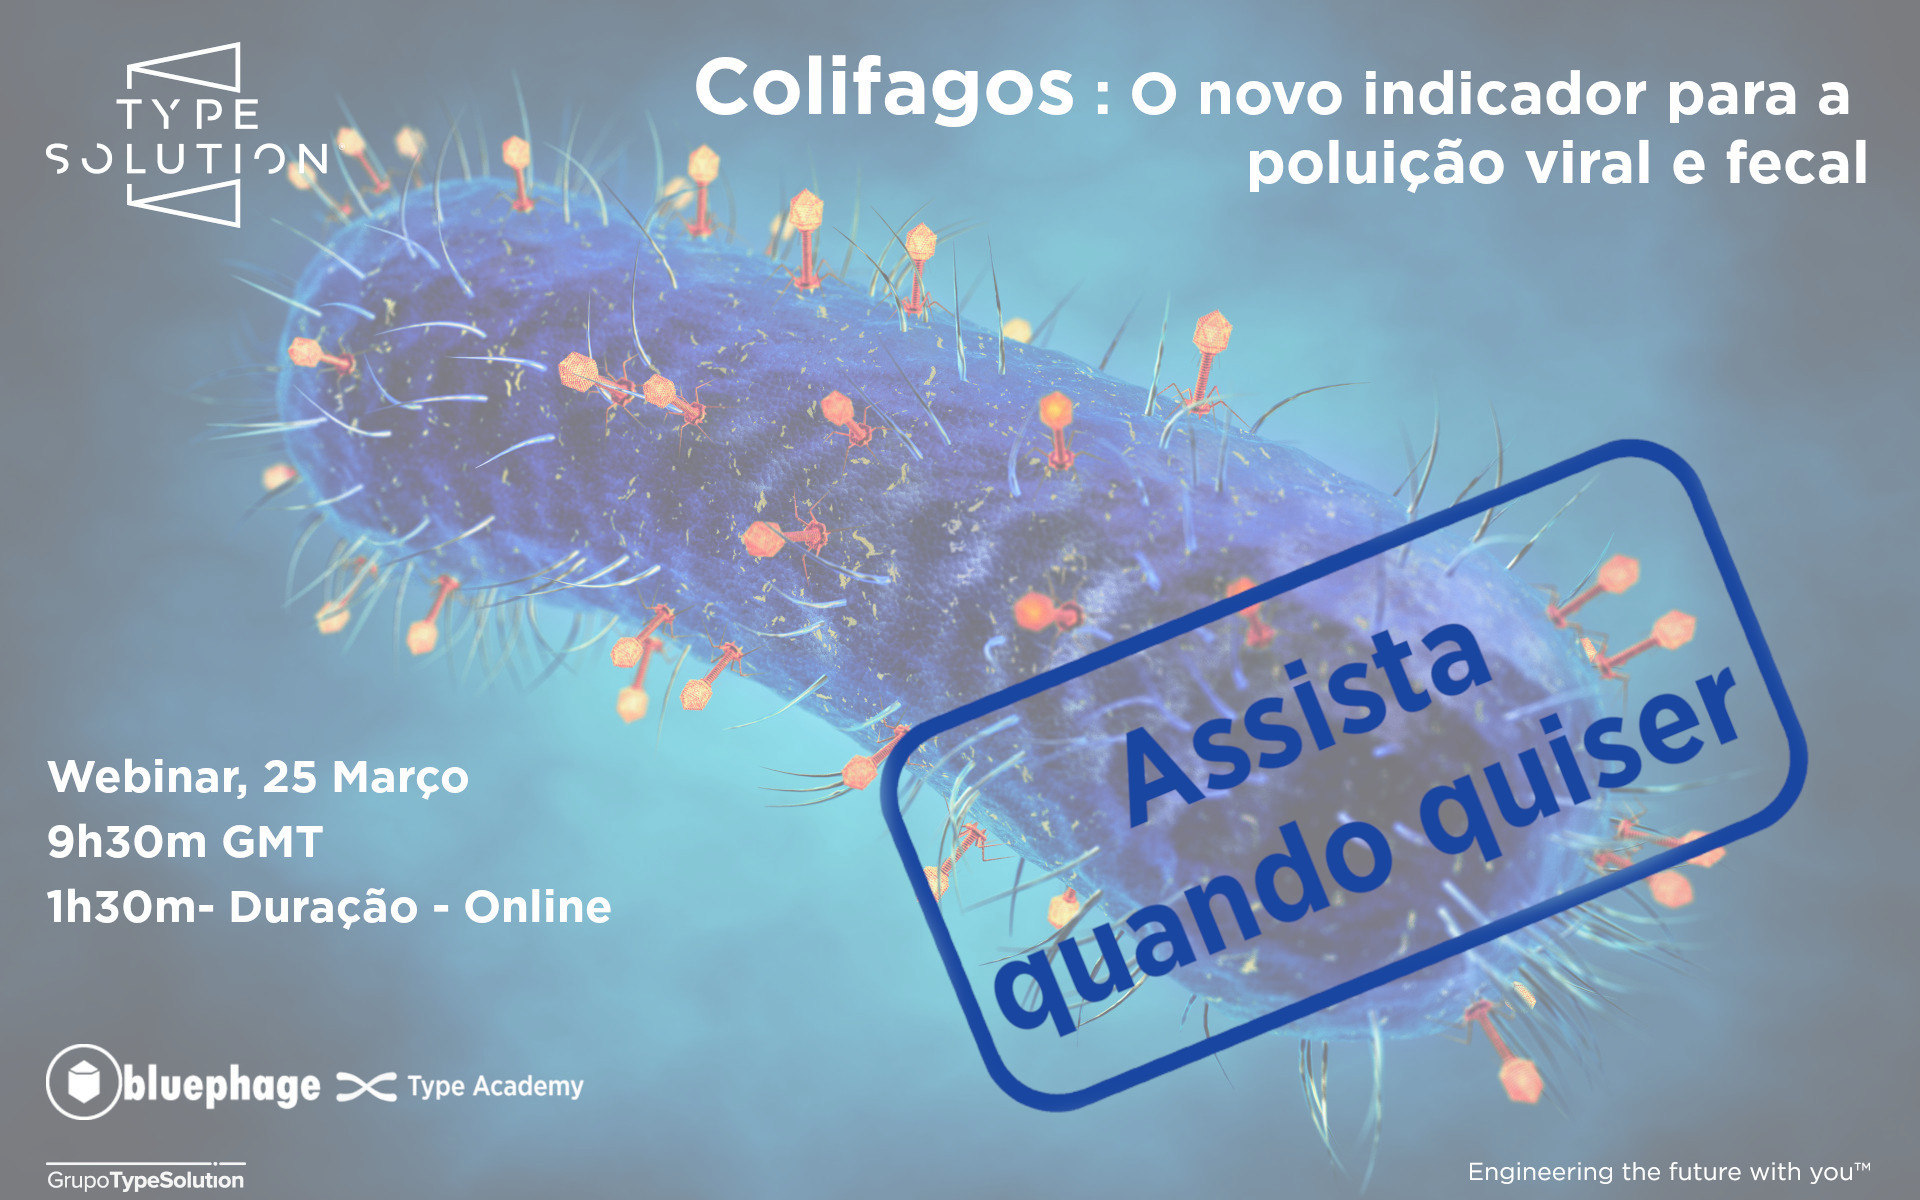 Colifagos - O Novo Indicador - Webinar on demand